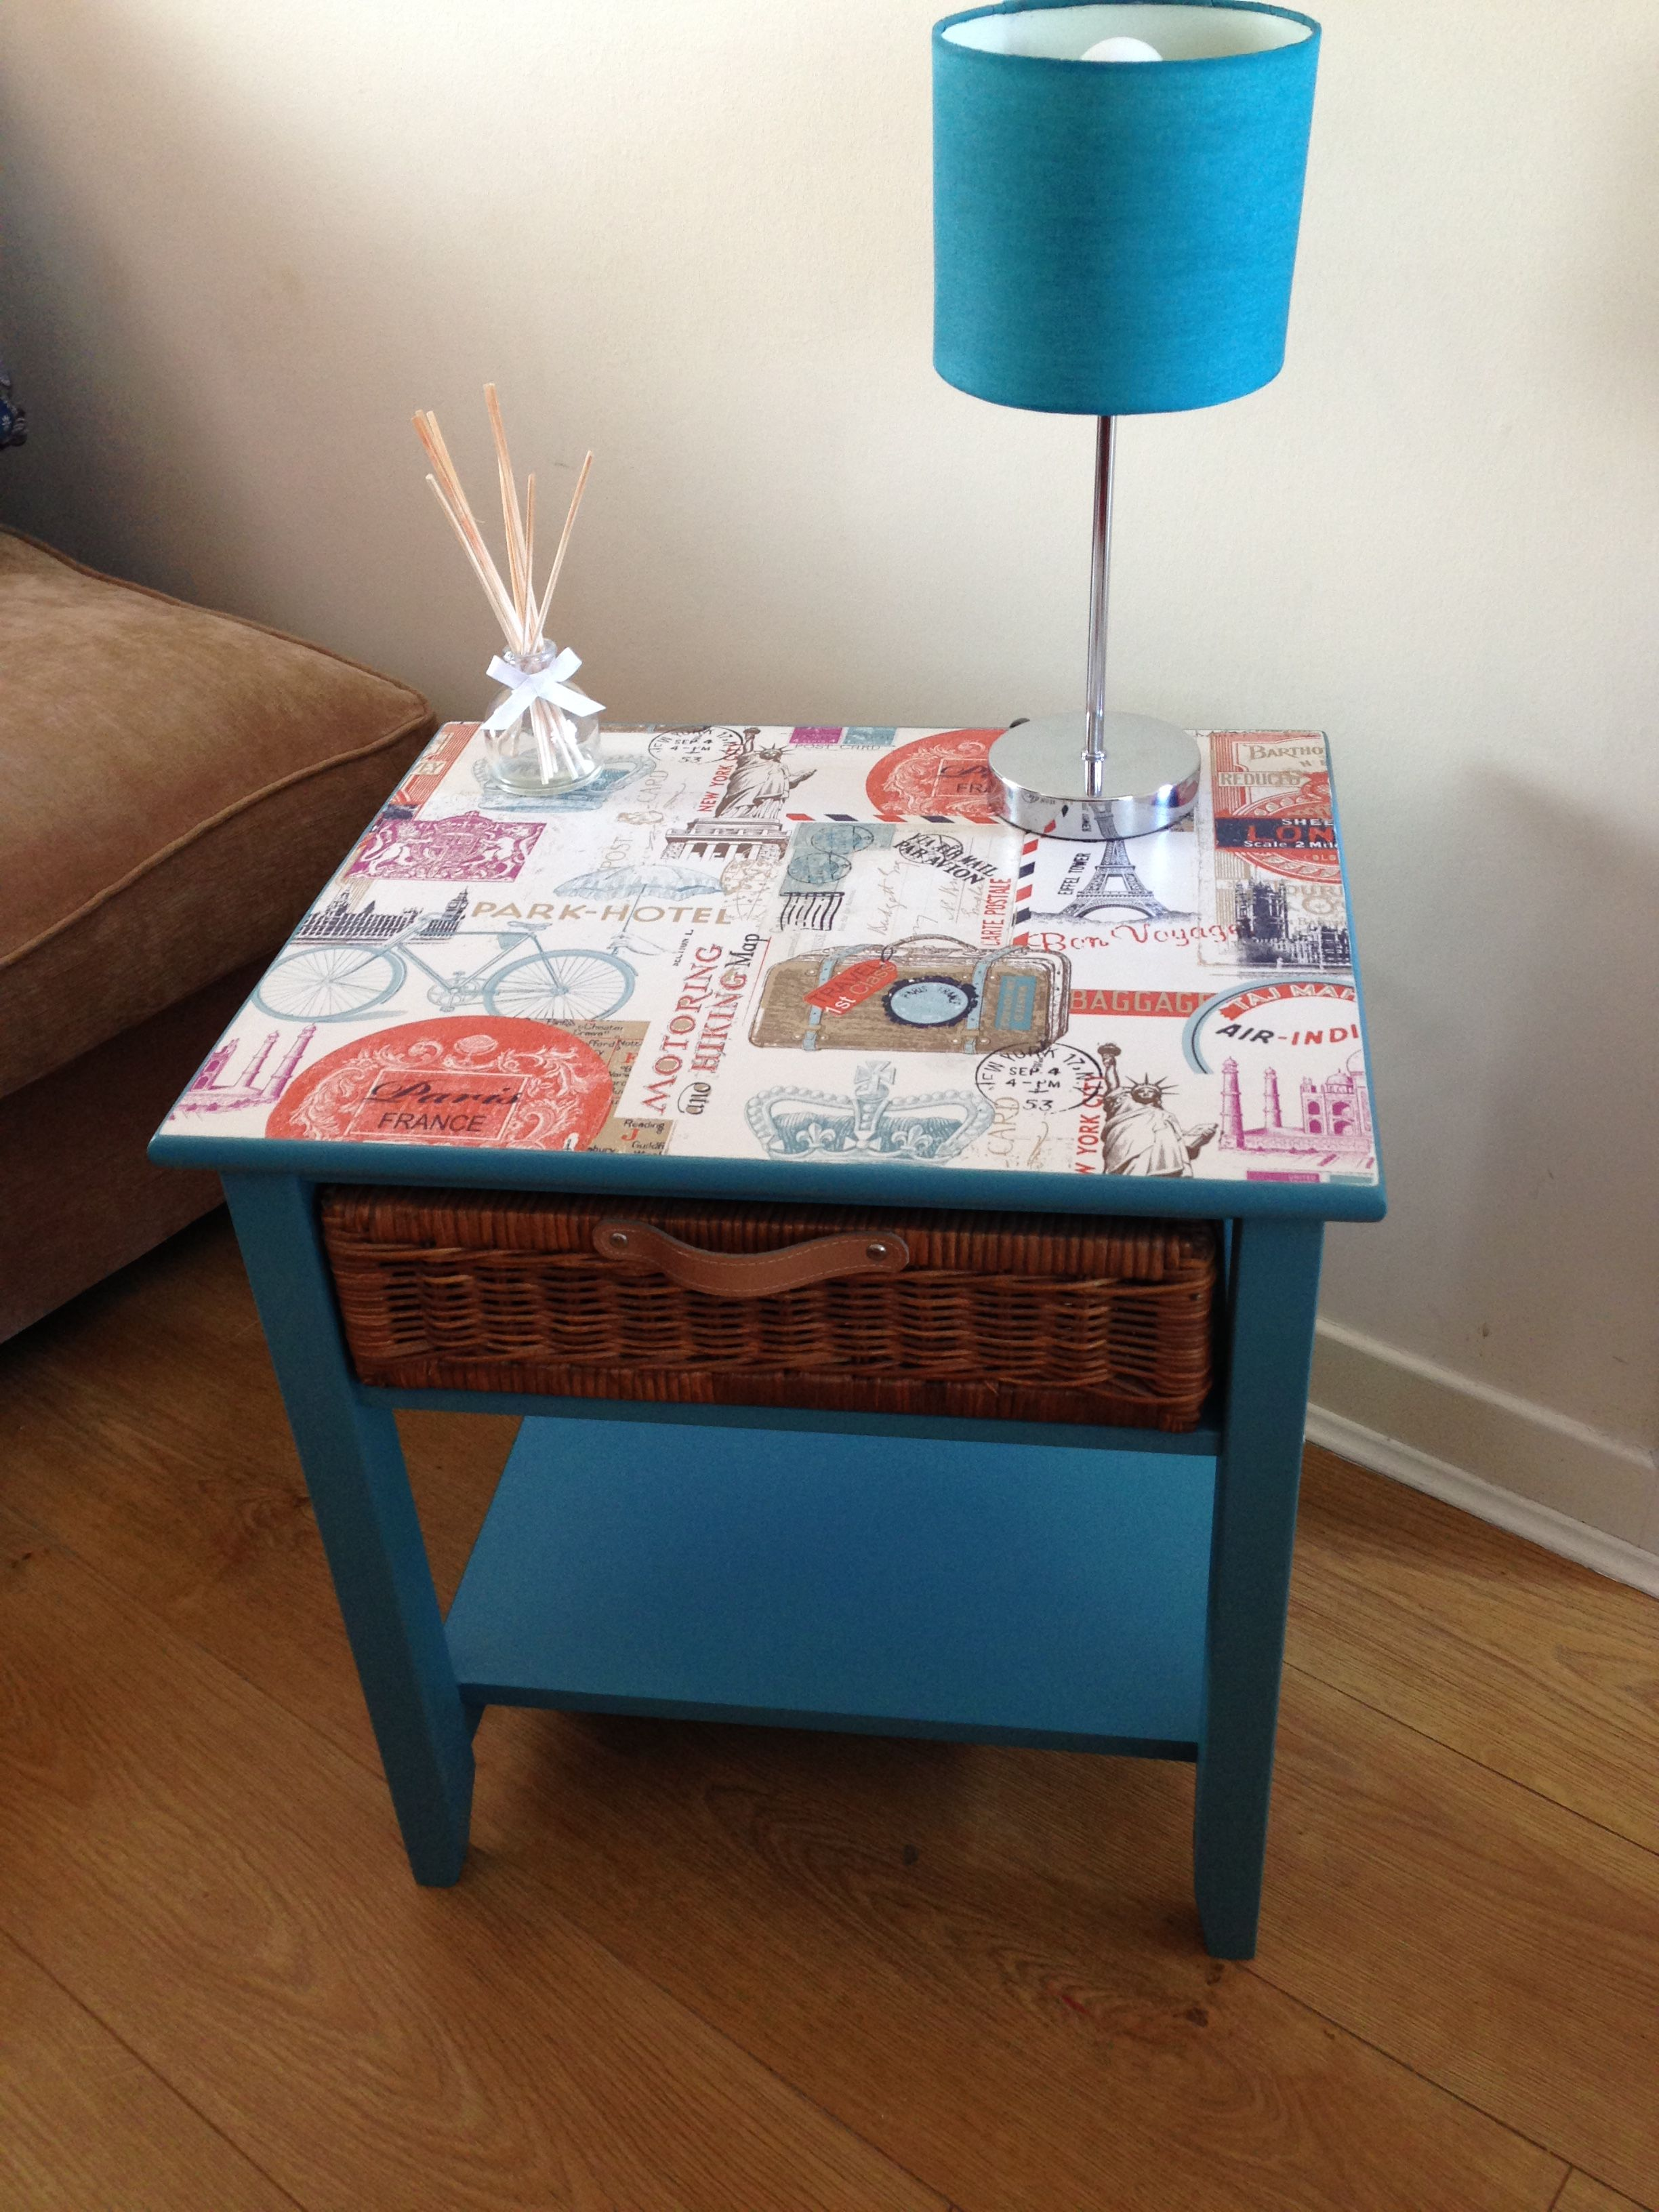 Upcycled furniture side table in teal with wicker basket and upcycled furniture side table in teal with wicker basket and decoupaged top in travel motif geotapseo Gallery